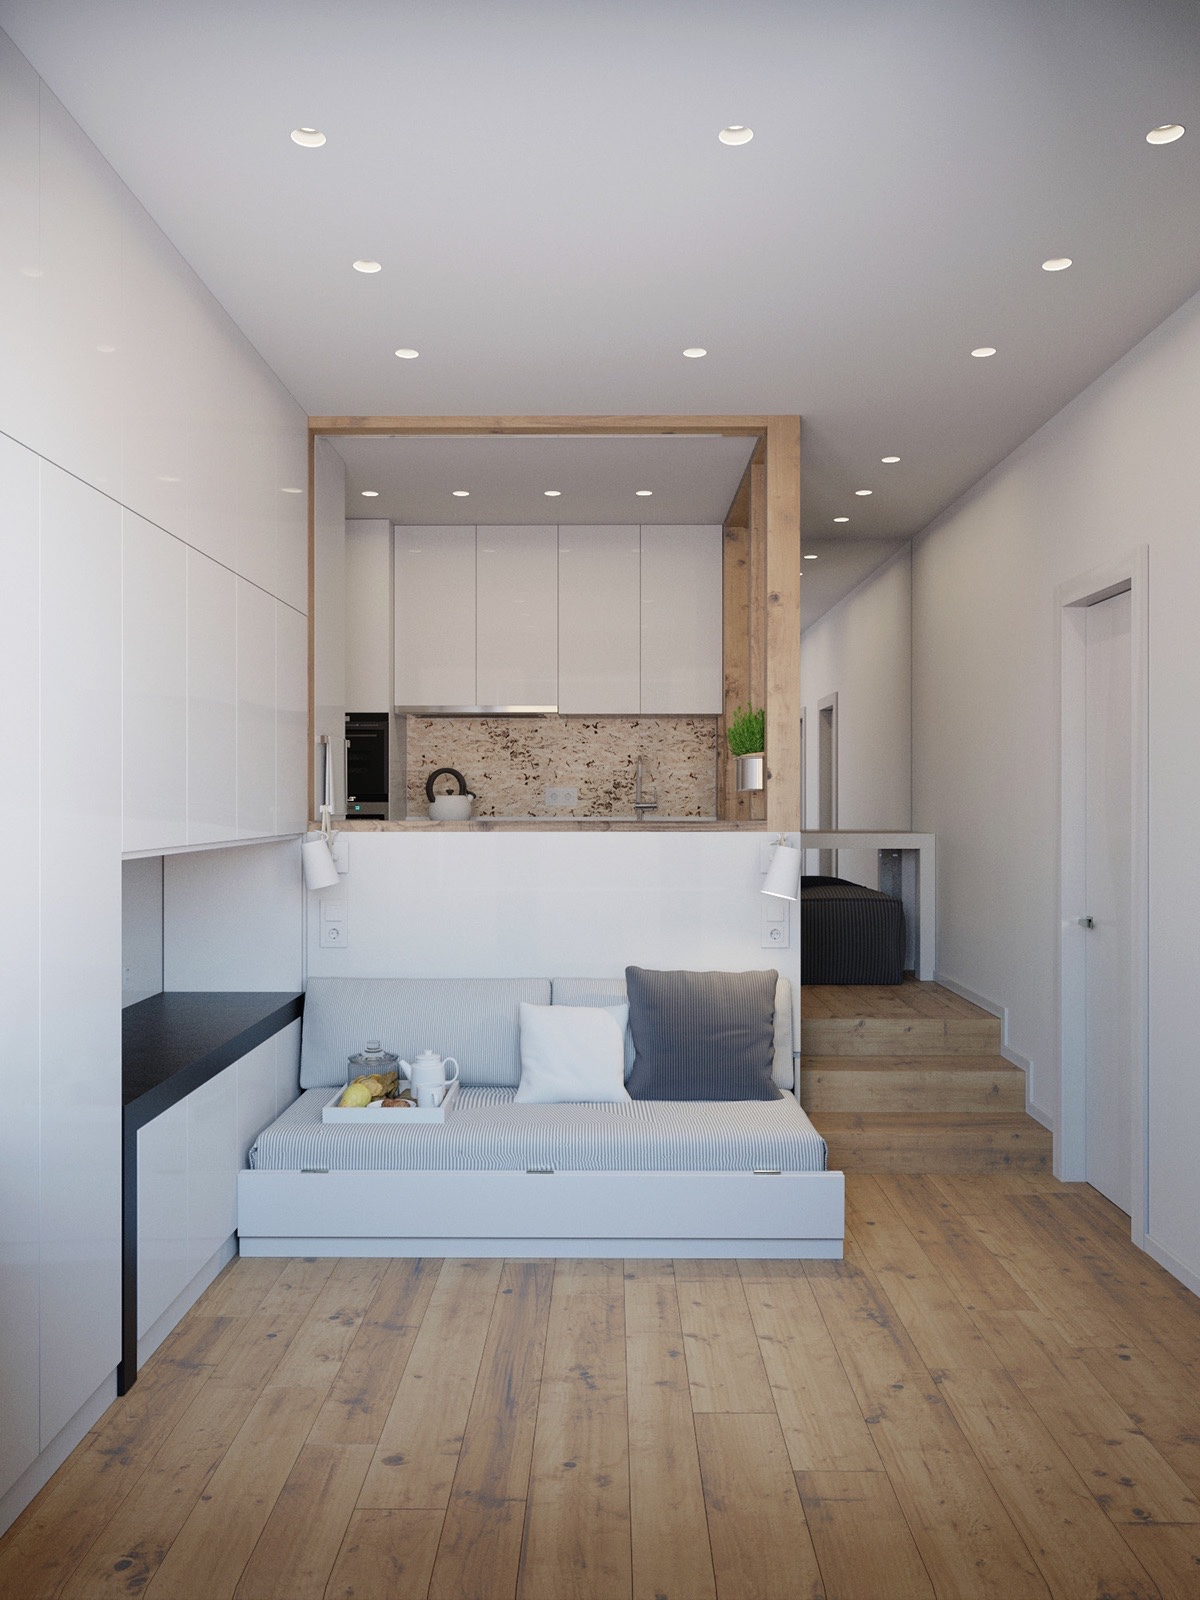 Our final living space, coming in at 25sqm, is a truly innovative use of space. White-walled interiors showcase a kitchen and living space, with the kitchen bench an additional backing for the lounge. Corked kitchen tiling draws the eye.